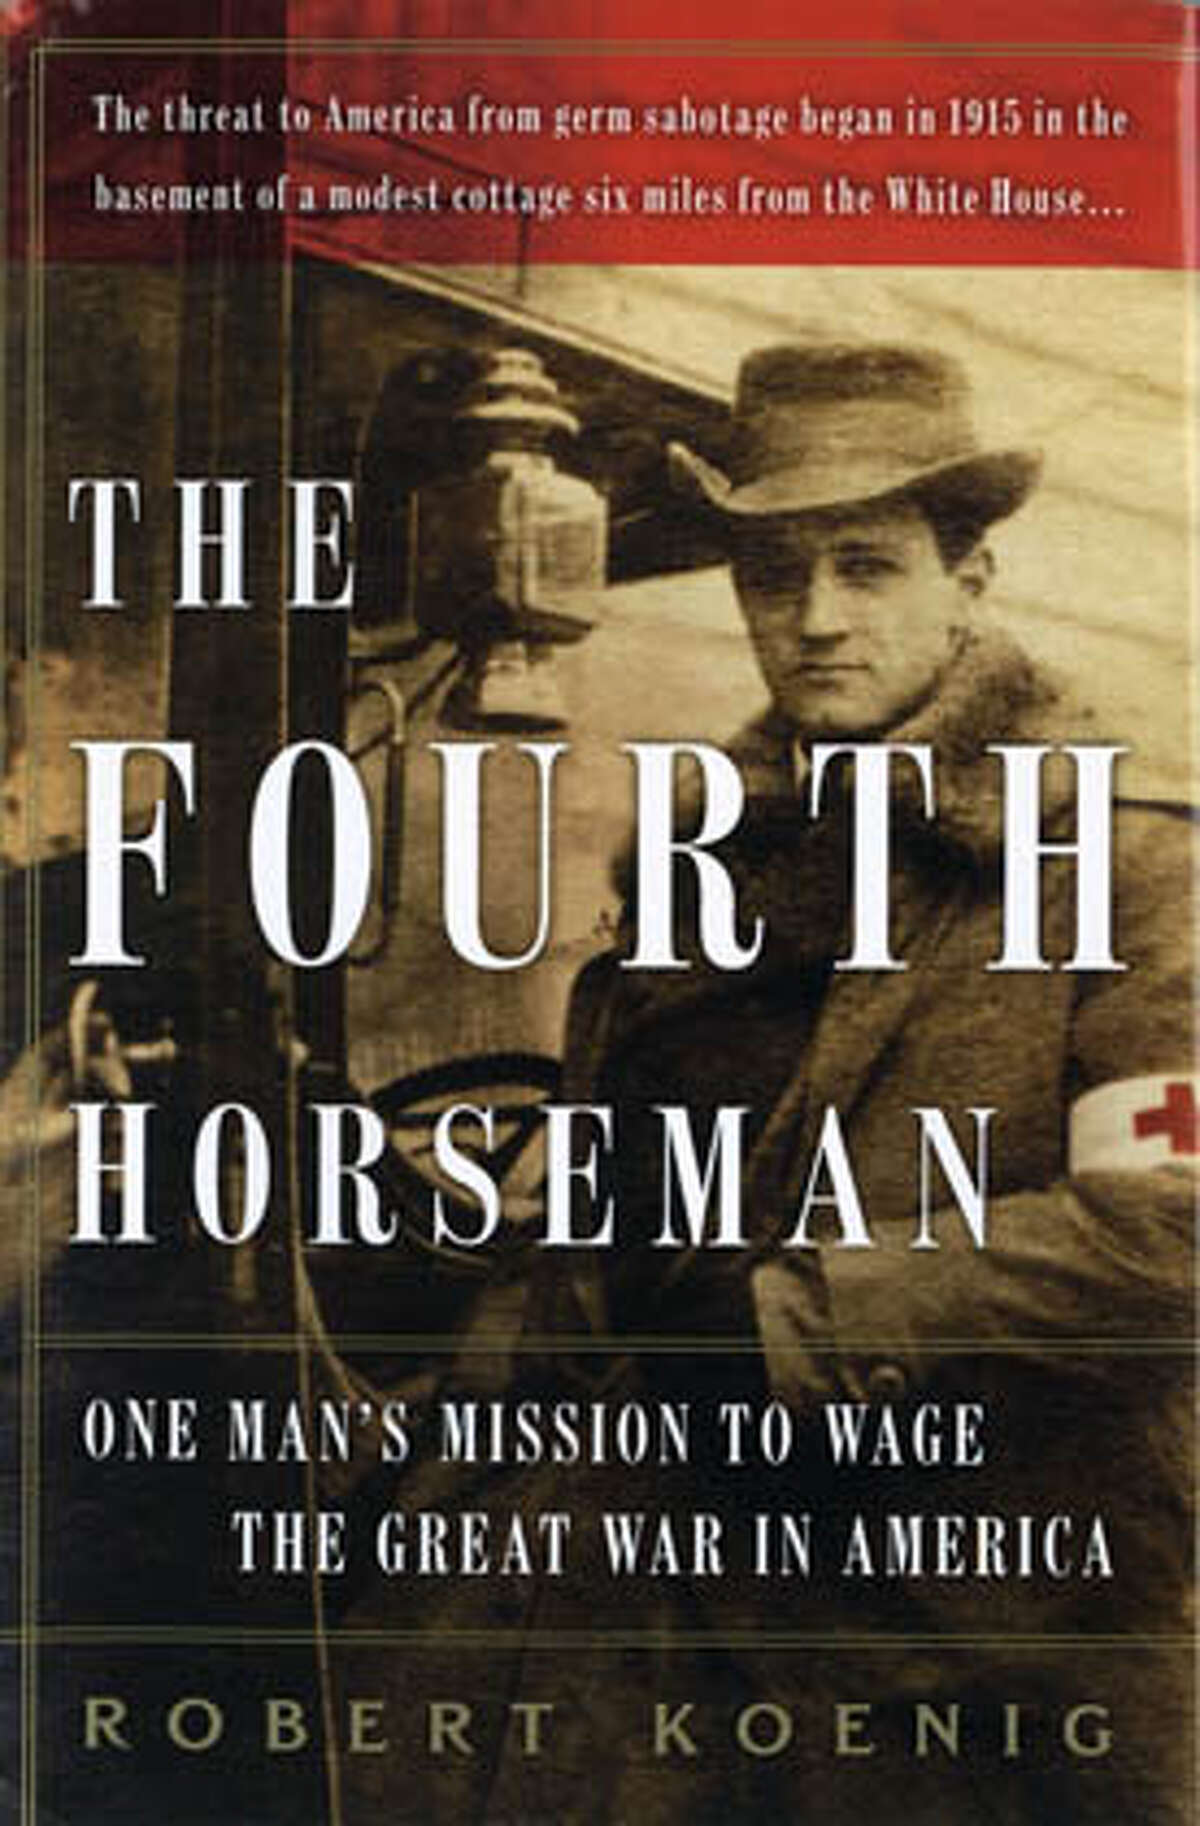 """""""The Fourth Horseman: One Man's Mission to Wage the Great War in America"""" by Robert Koenig"""